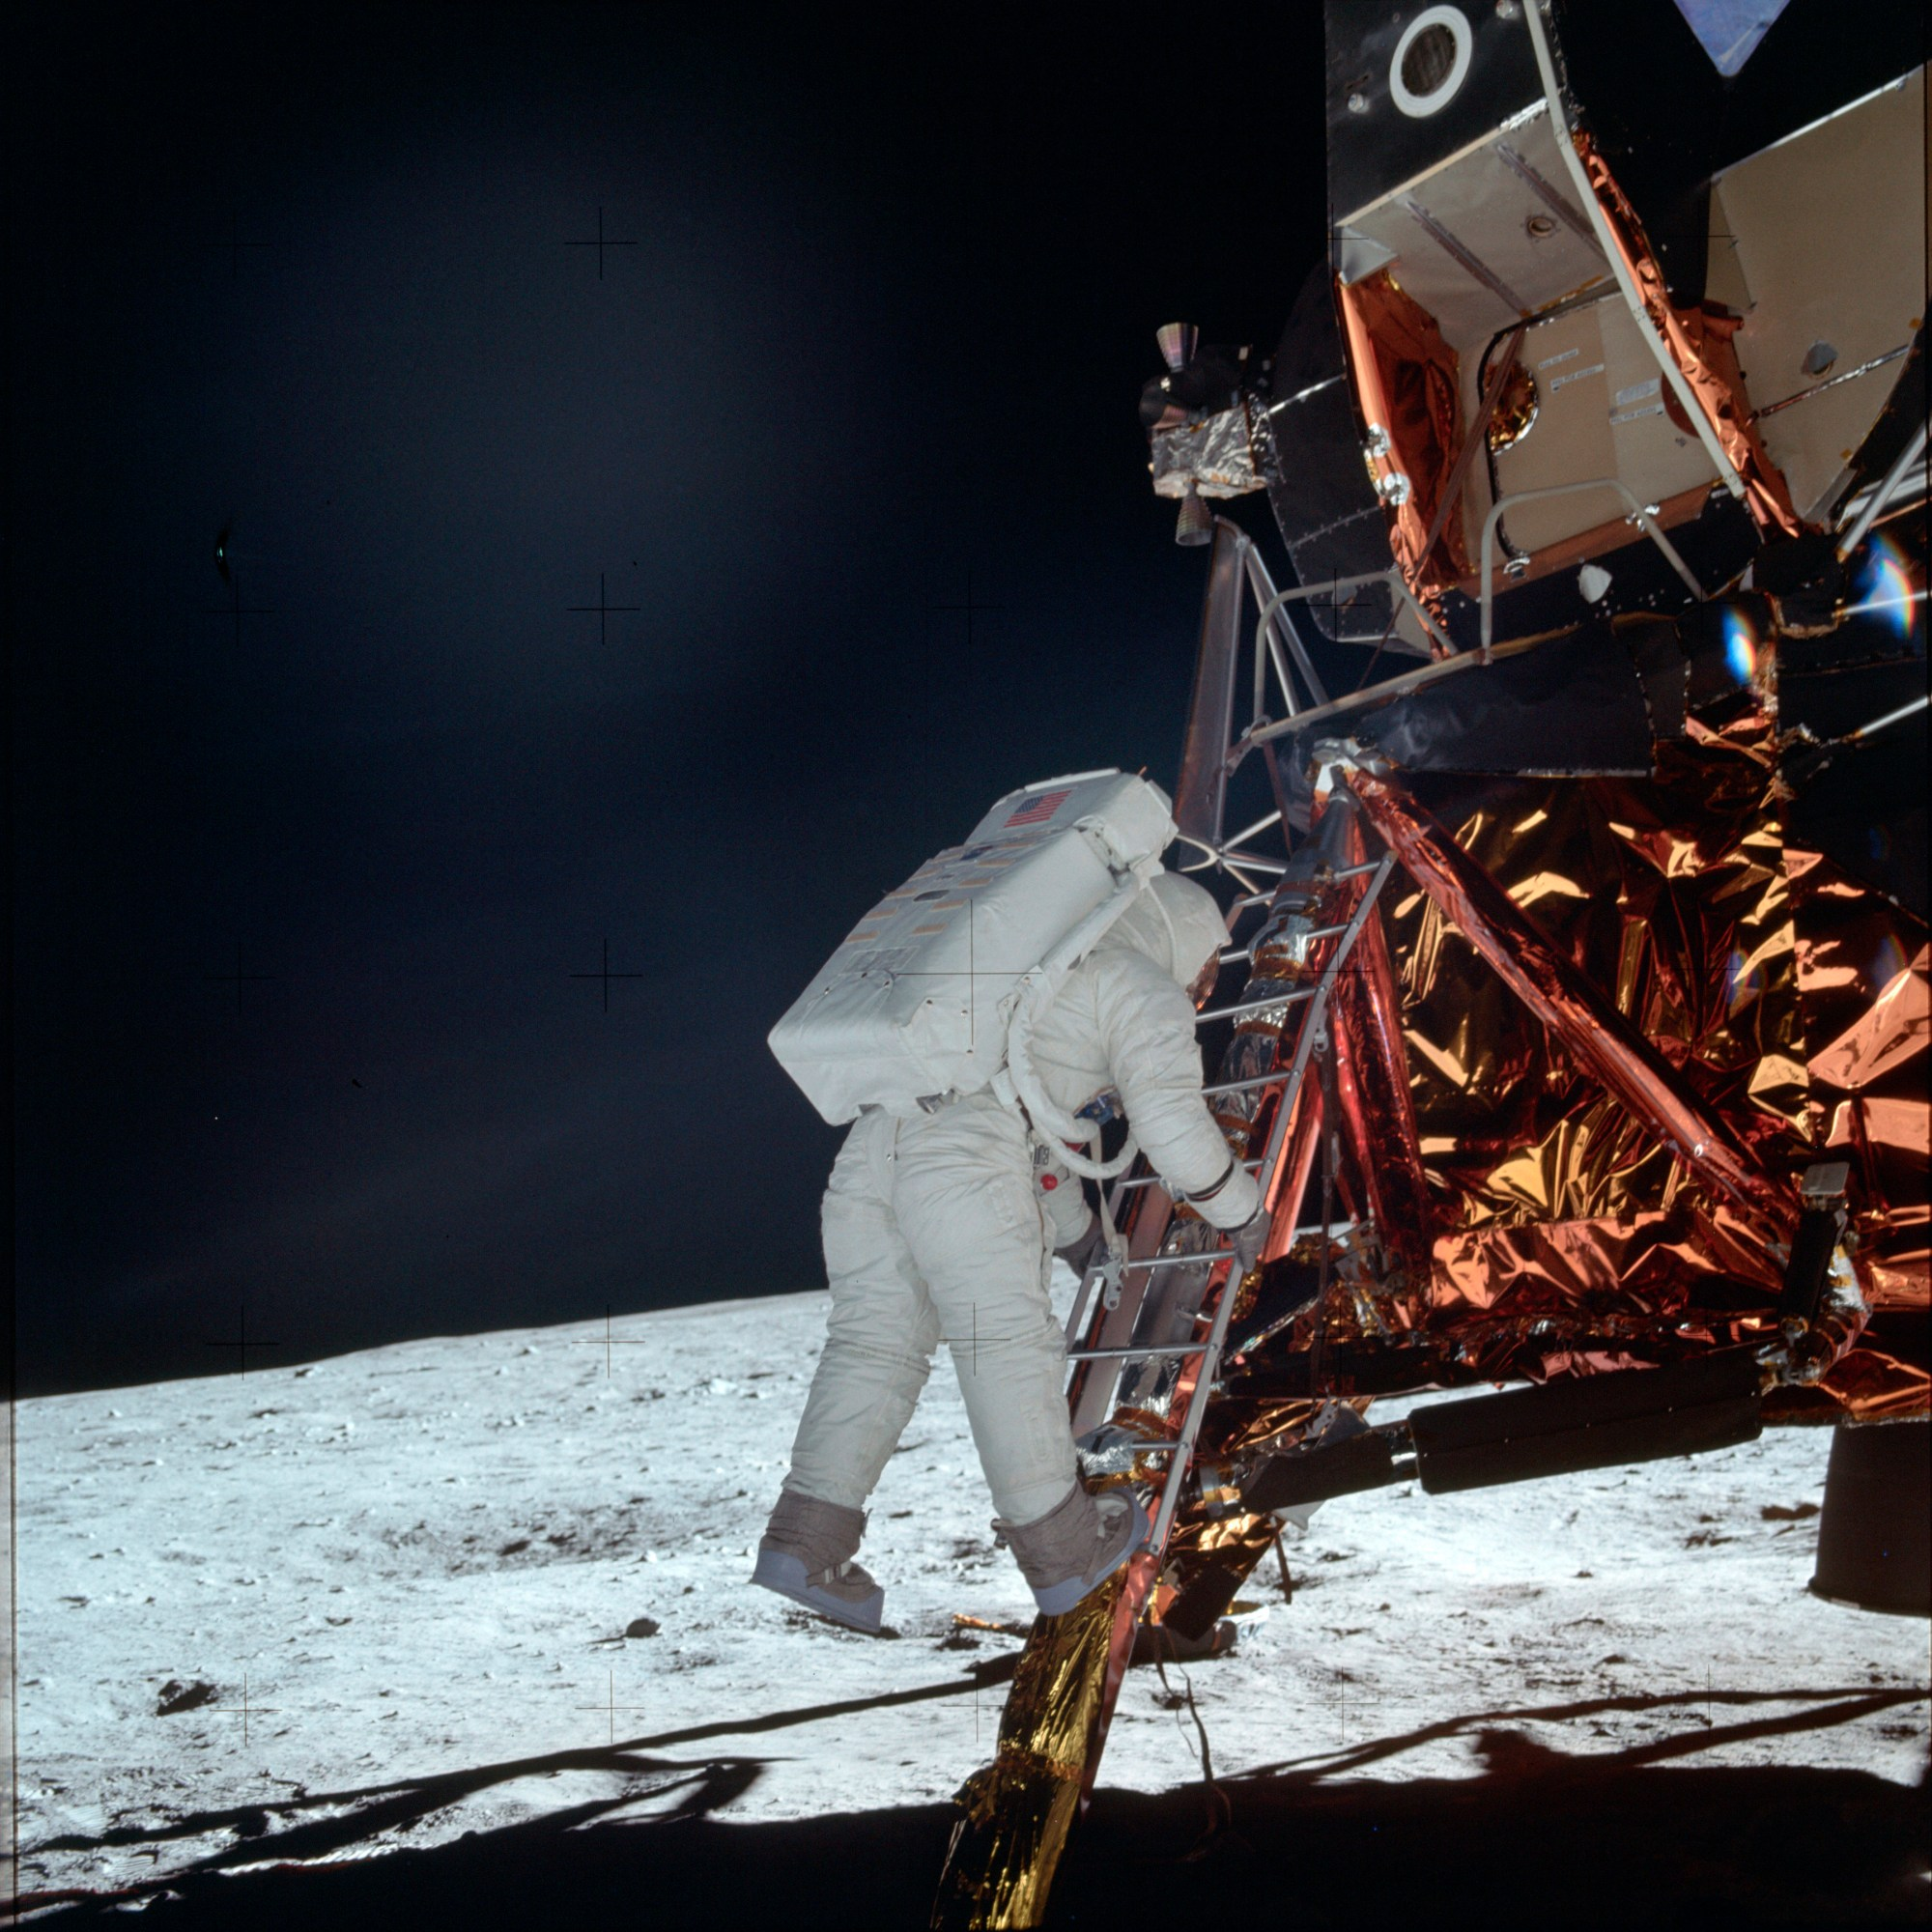 In this July 20, 1969 photo made available by NASA, astronaut Buzz Aldrin Jr. descends a ladder from the Lunar Module during the Apollo 11 mission. (Neil Armstrong/NASA via AP)